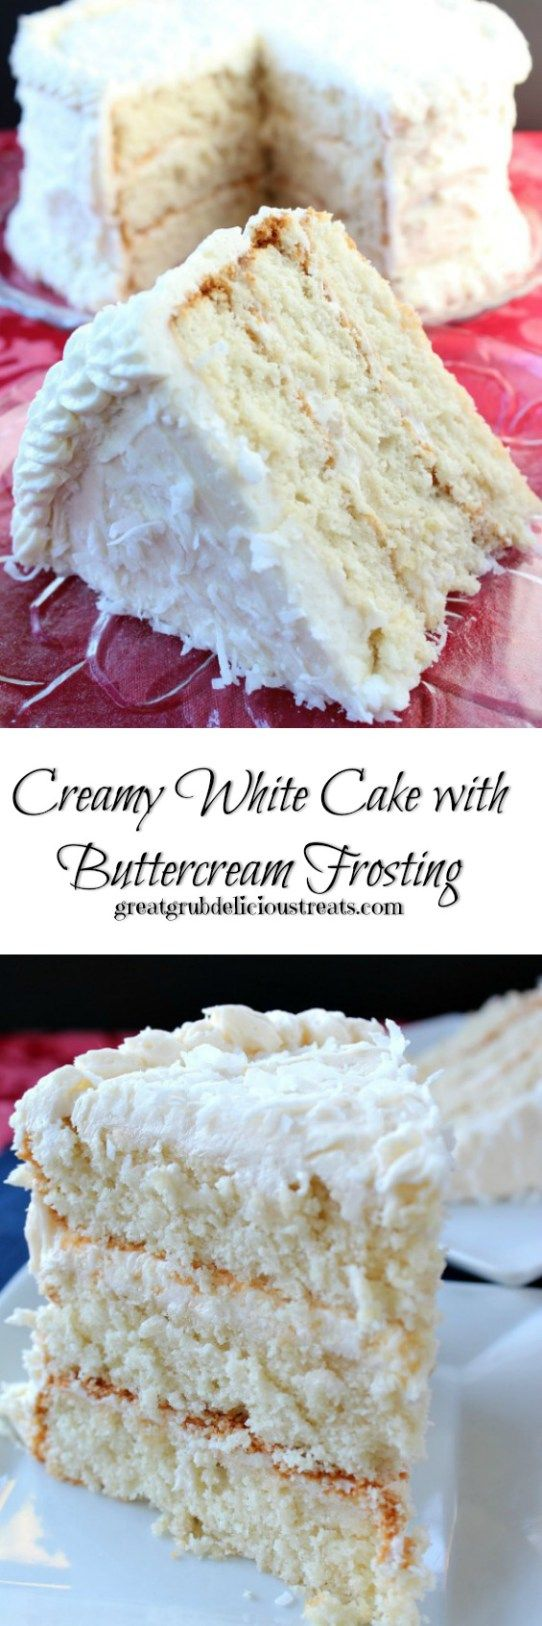 wedding cake frosting options 25 best ideas about white cake mixes on 22734